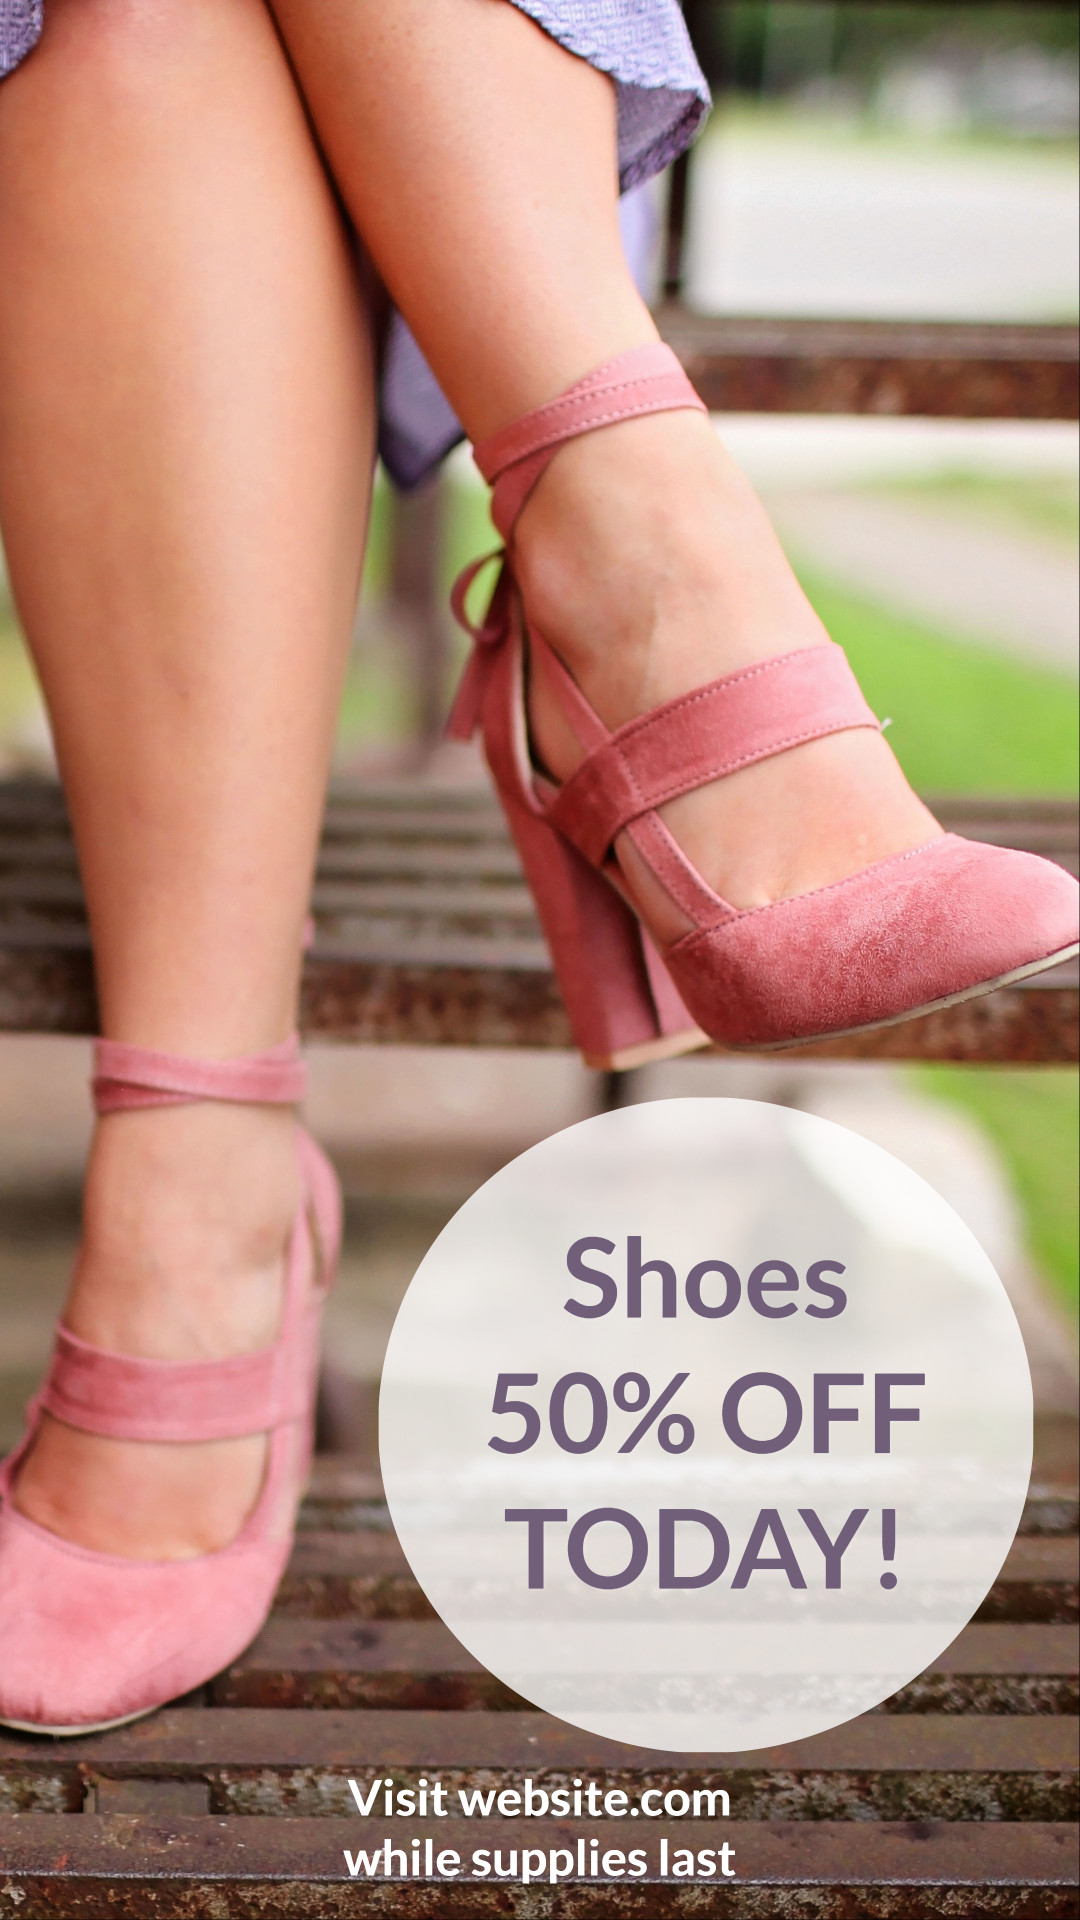 Shoes 50% off today